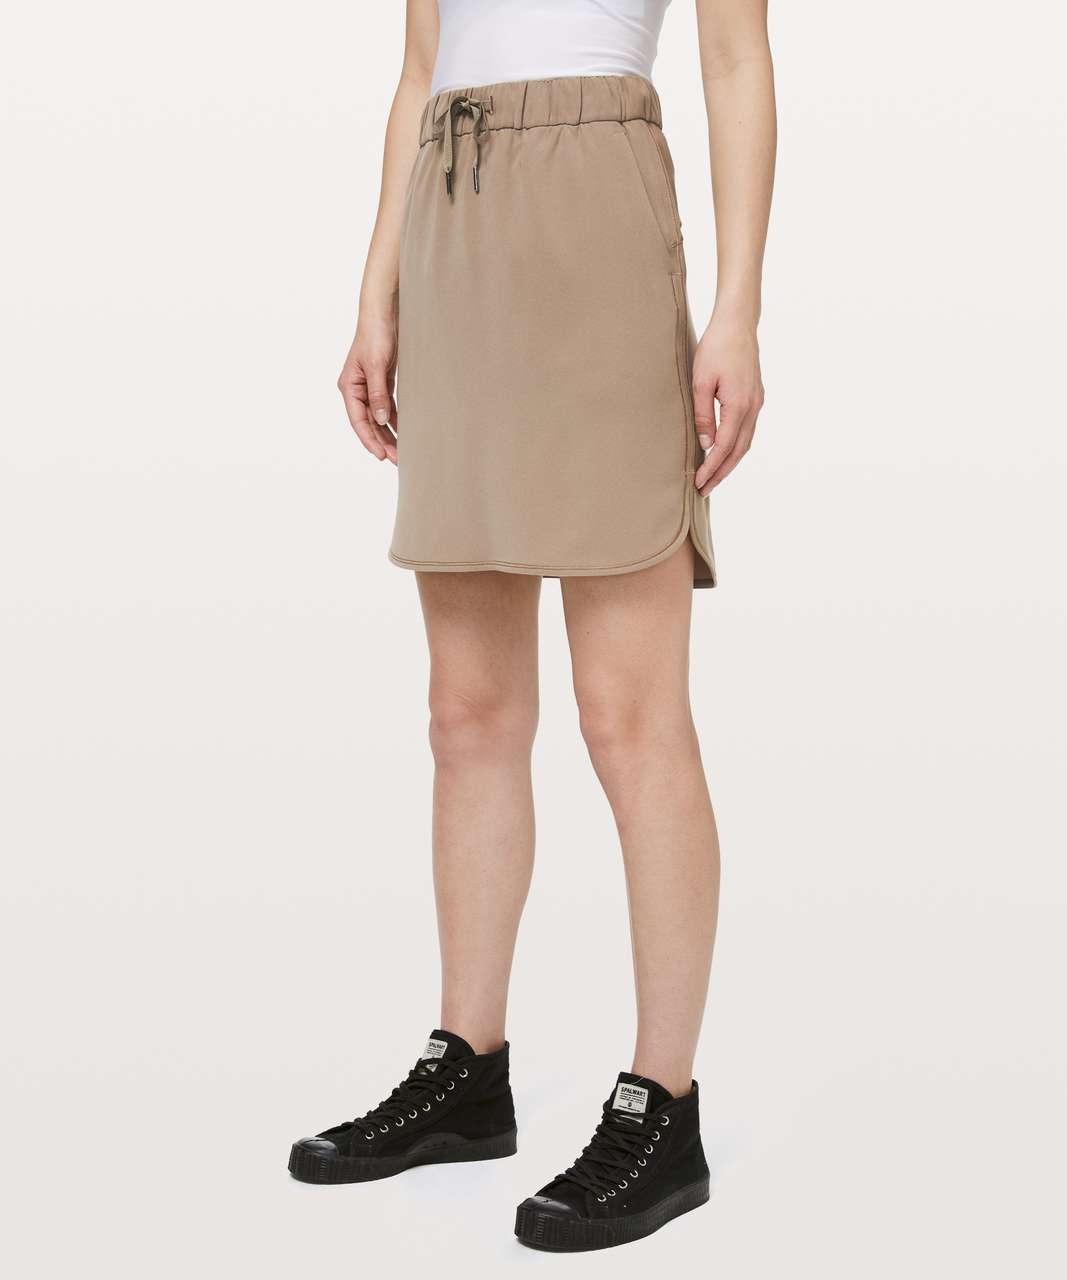 Lululemon On The Fly Skirt *Woven - Frontier